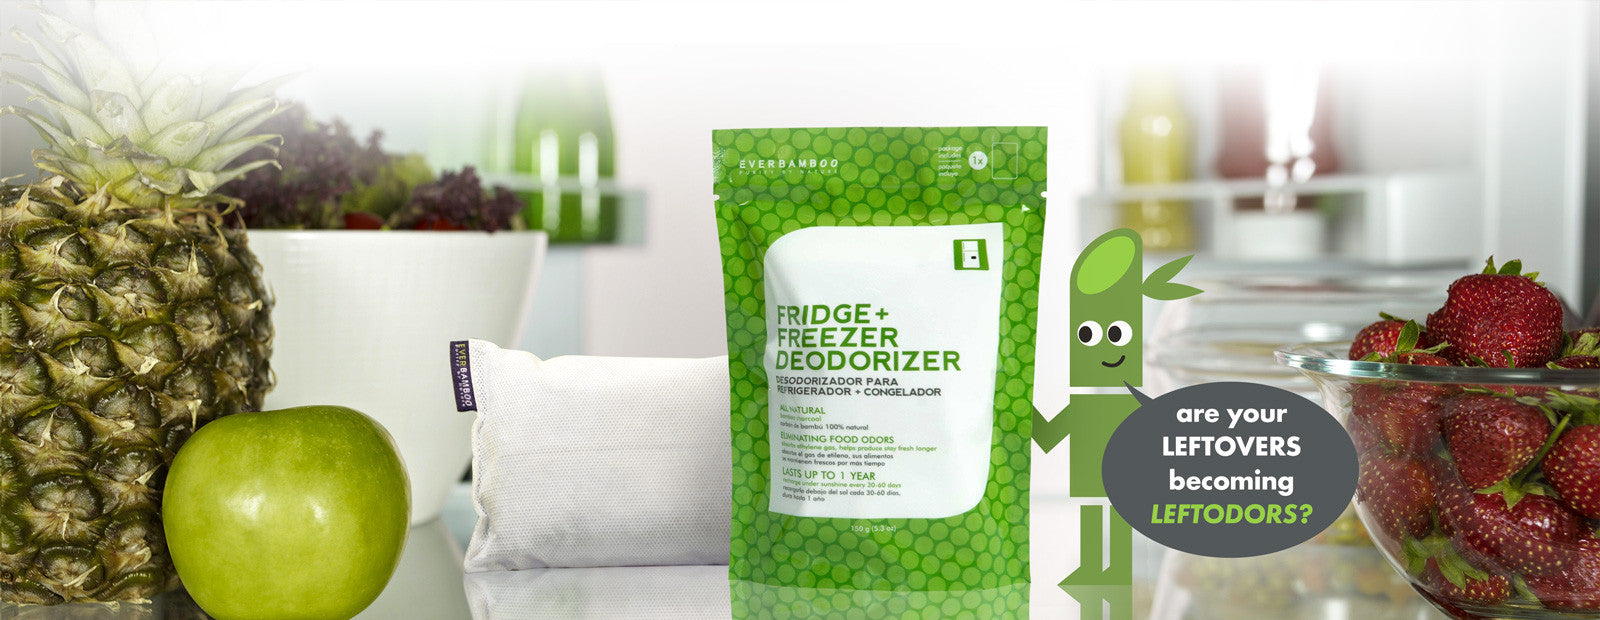 Ever Bamboo Fridge + Freezer Deodorizer